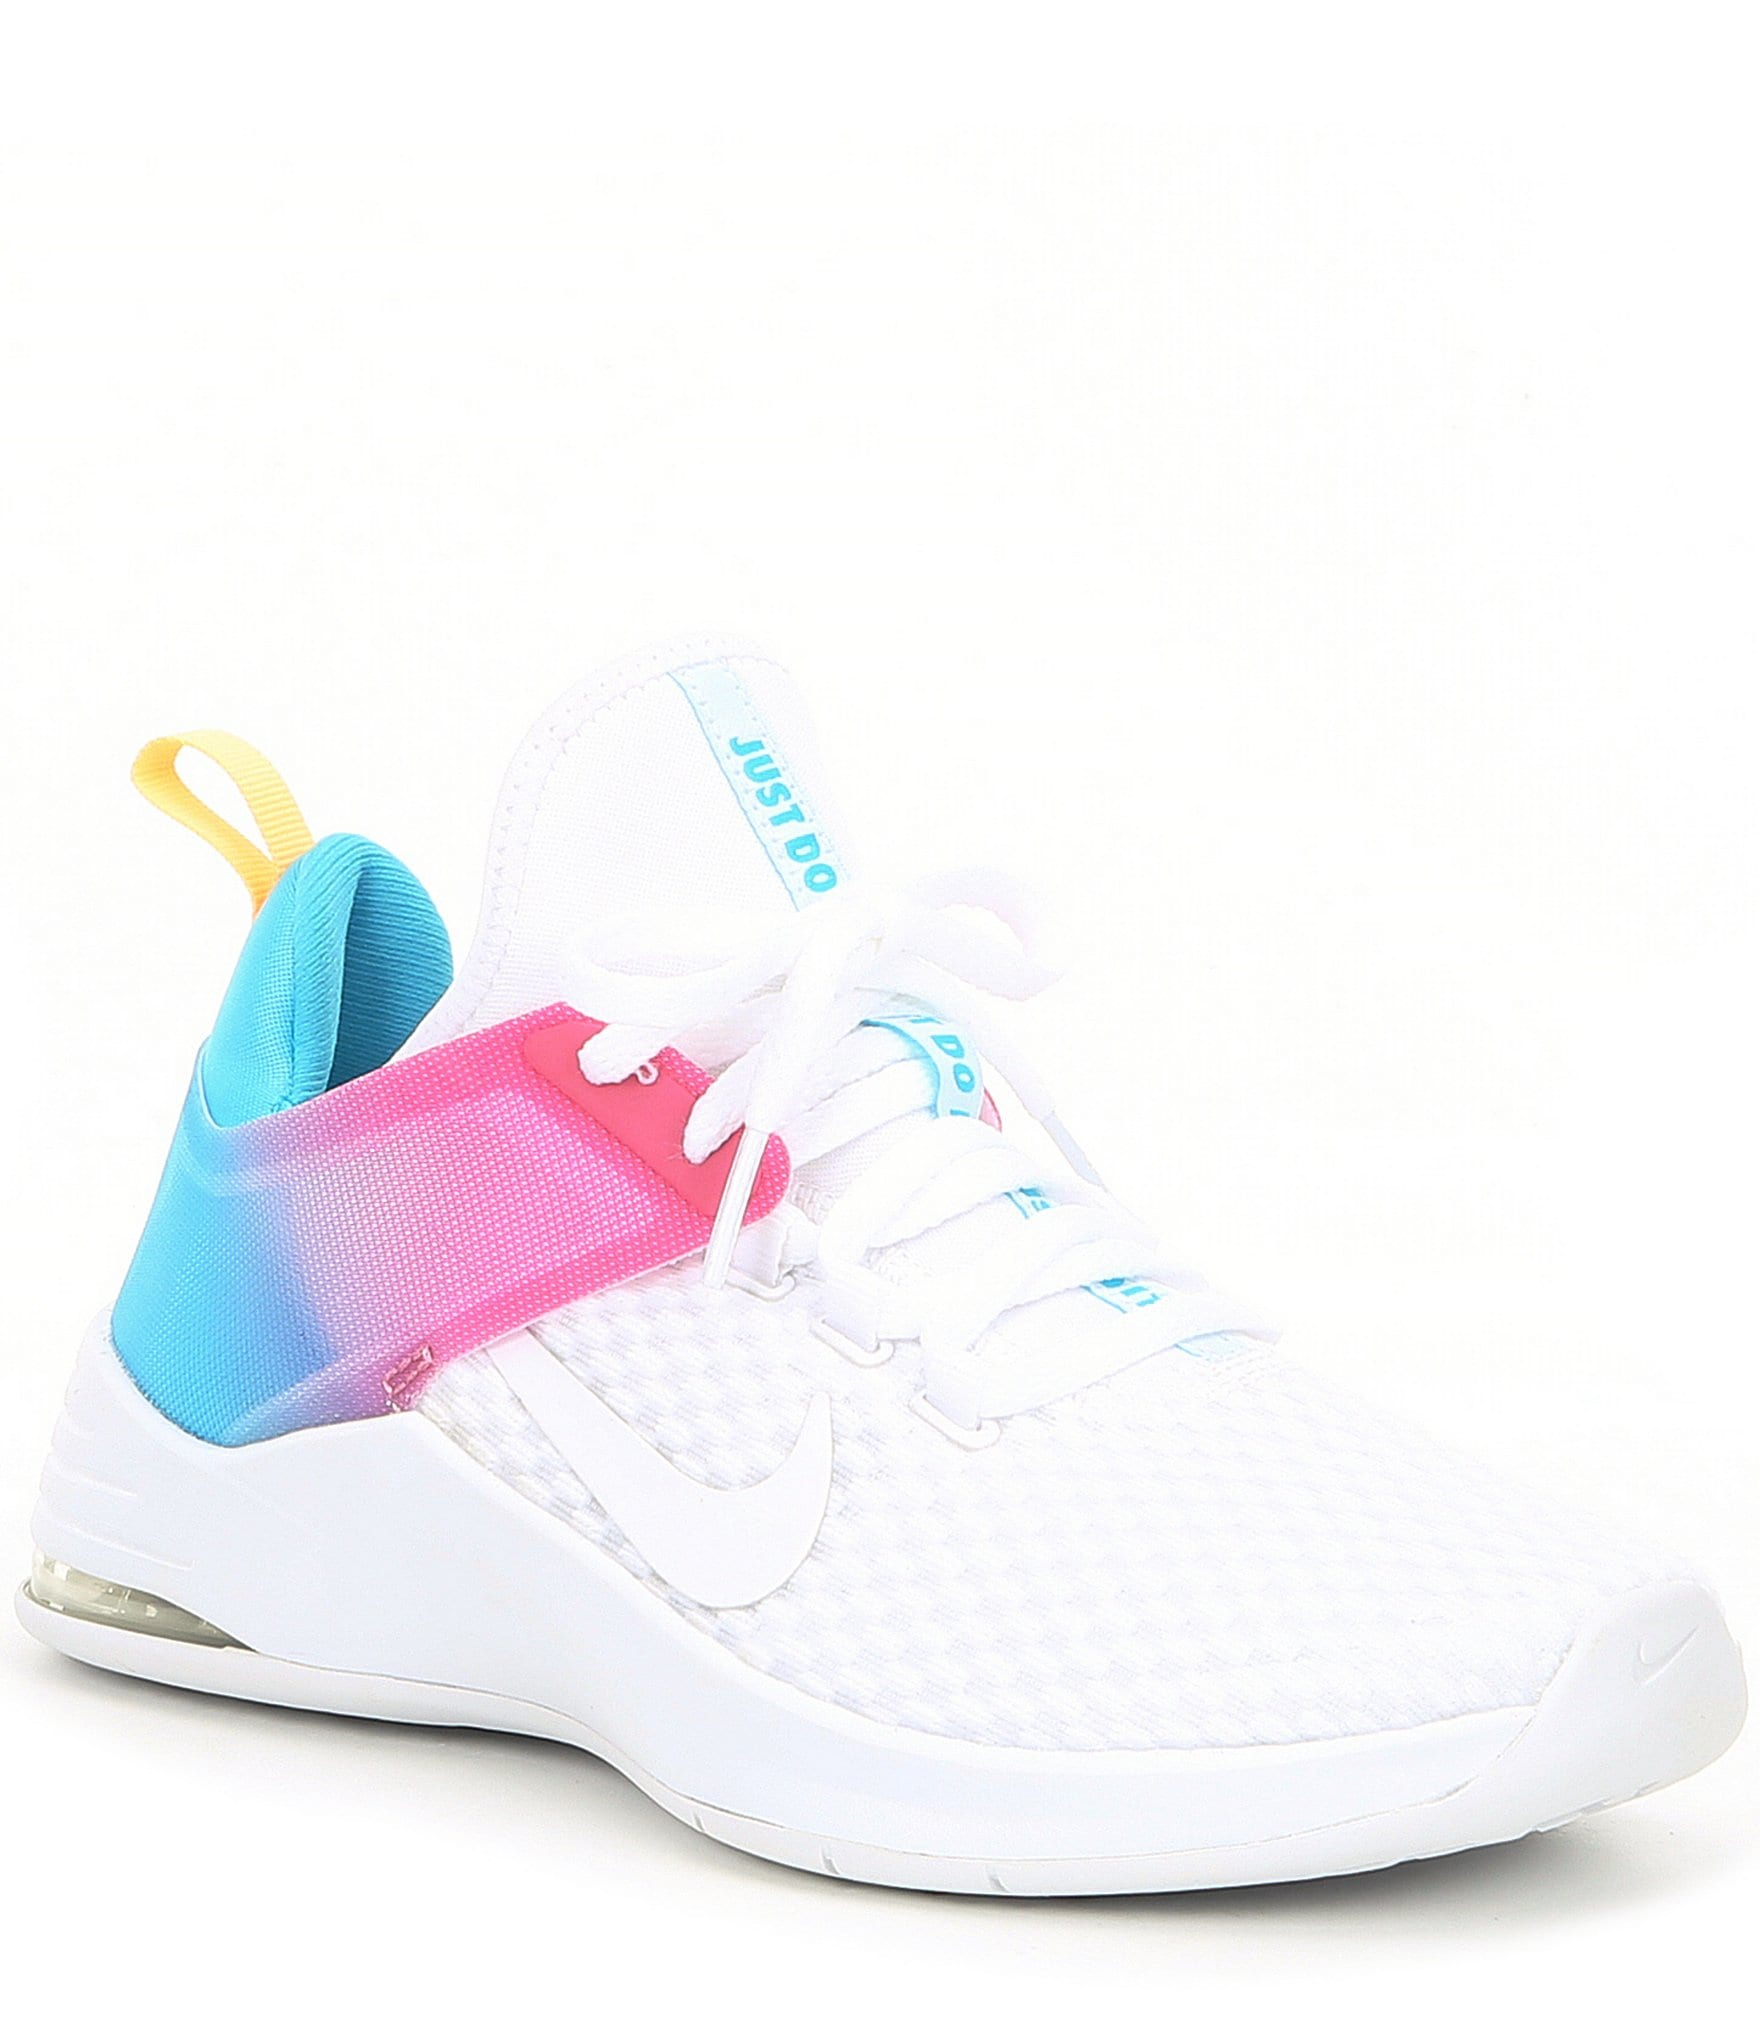 finest selection c3aa0 059ad NikeWomen s Air Max Bella TR 2 Training Shoe